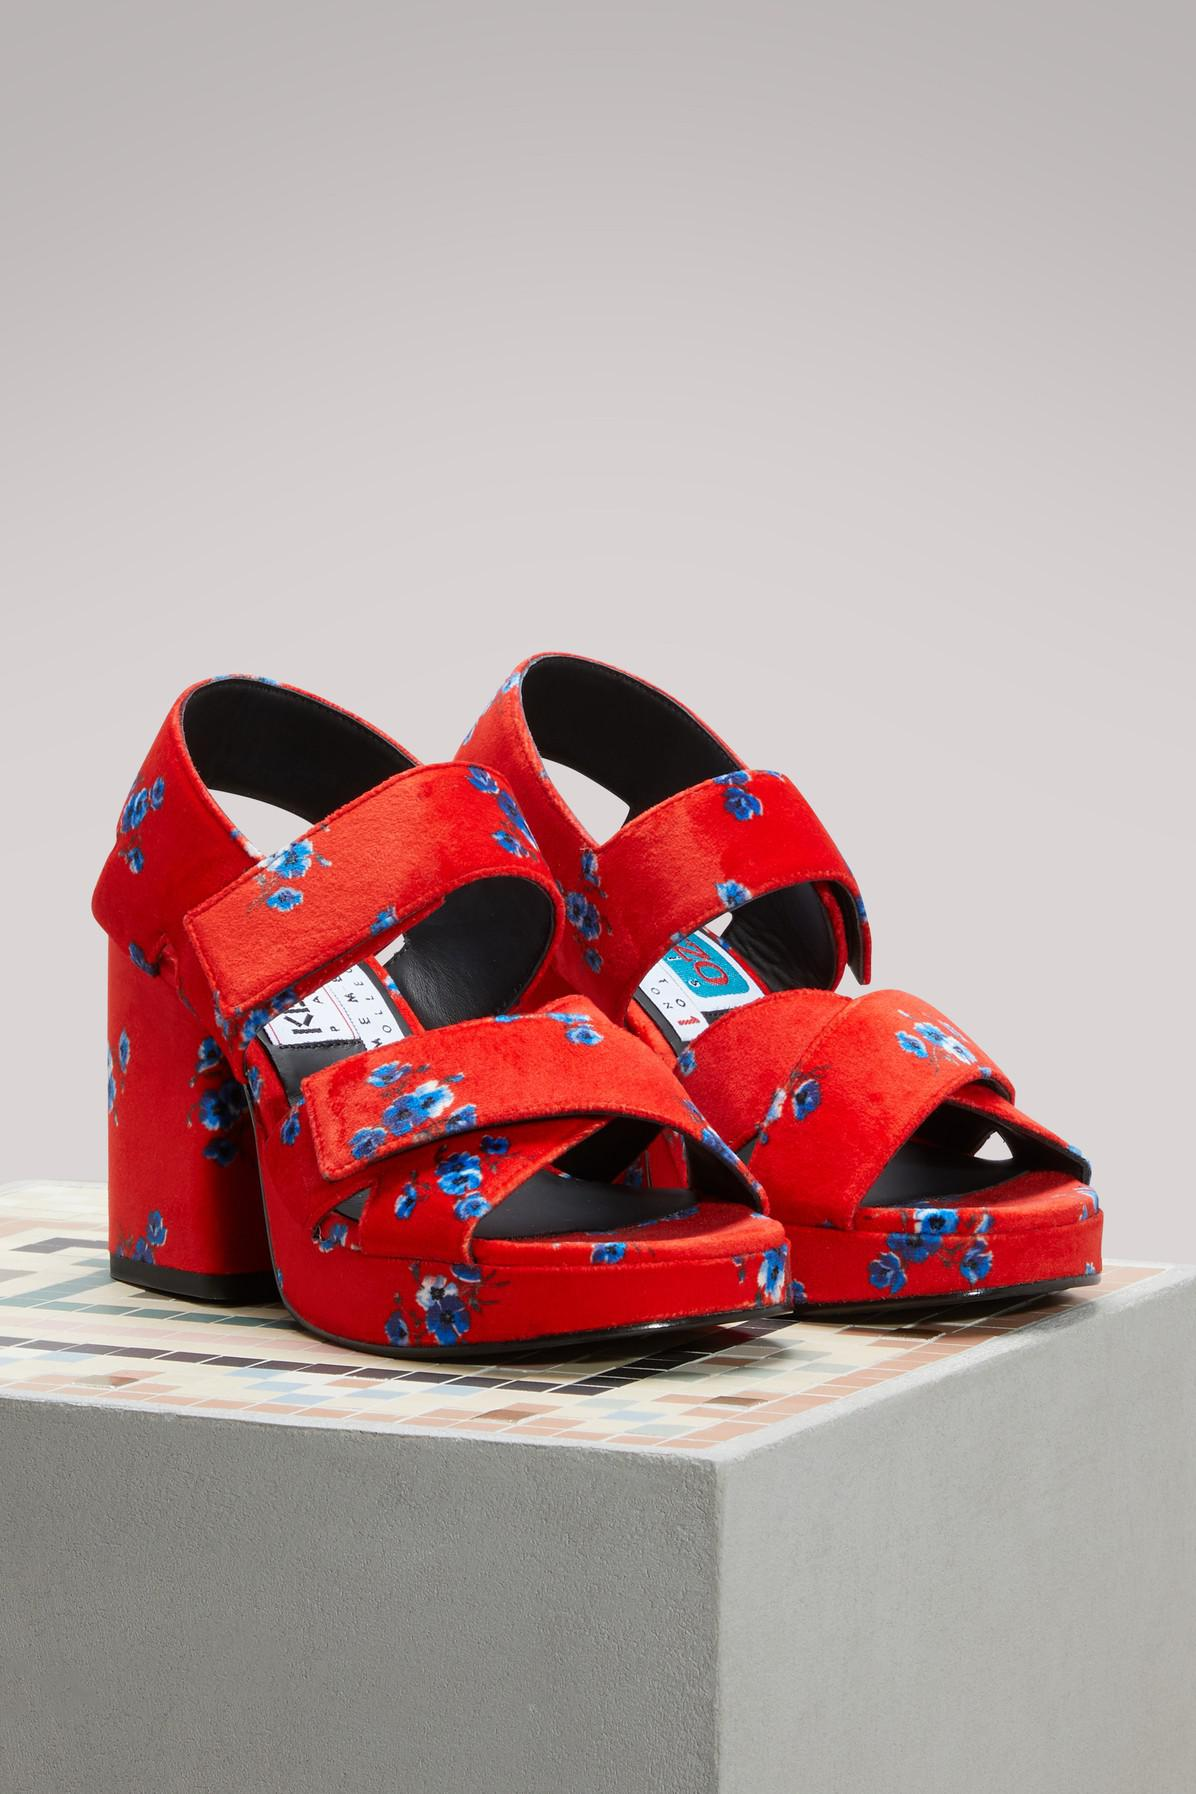 Brand New Unisex For Sale Cheap Real Kenzo Velvet sandals with heels BxRyj